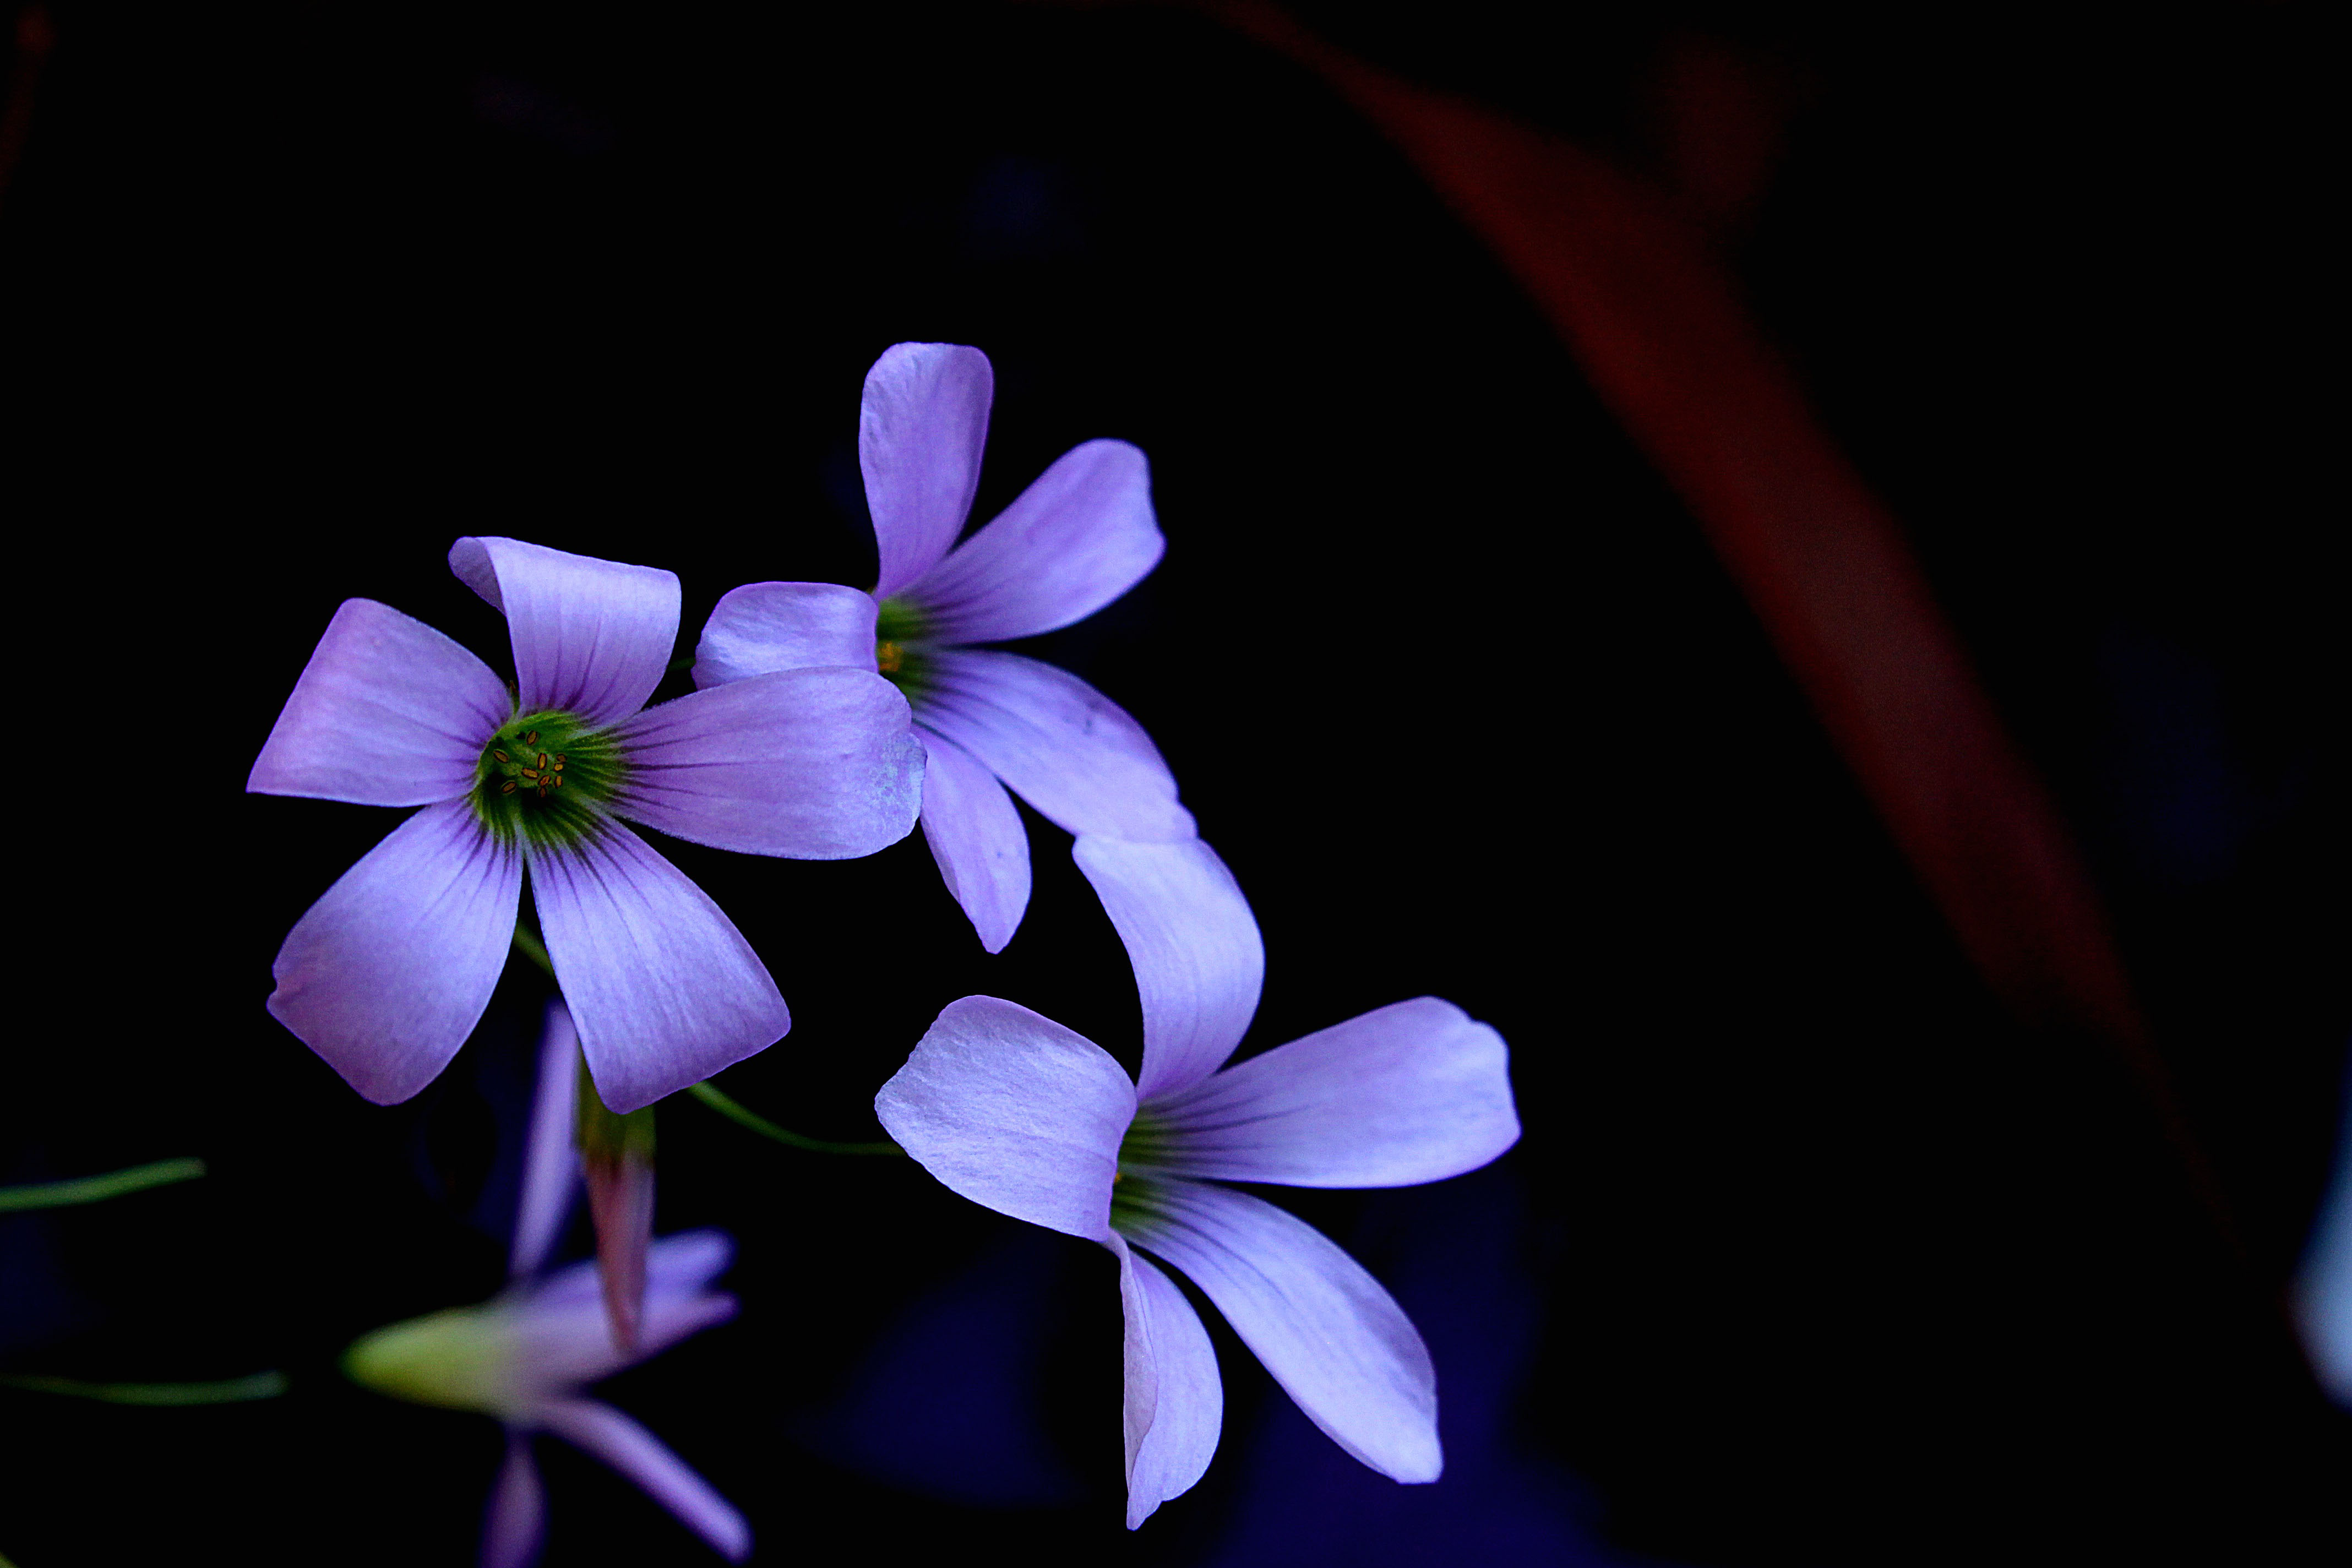 Flower,garden,nature,dark